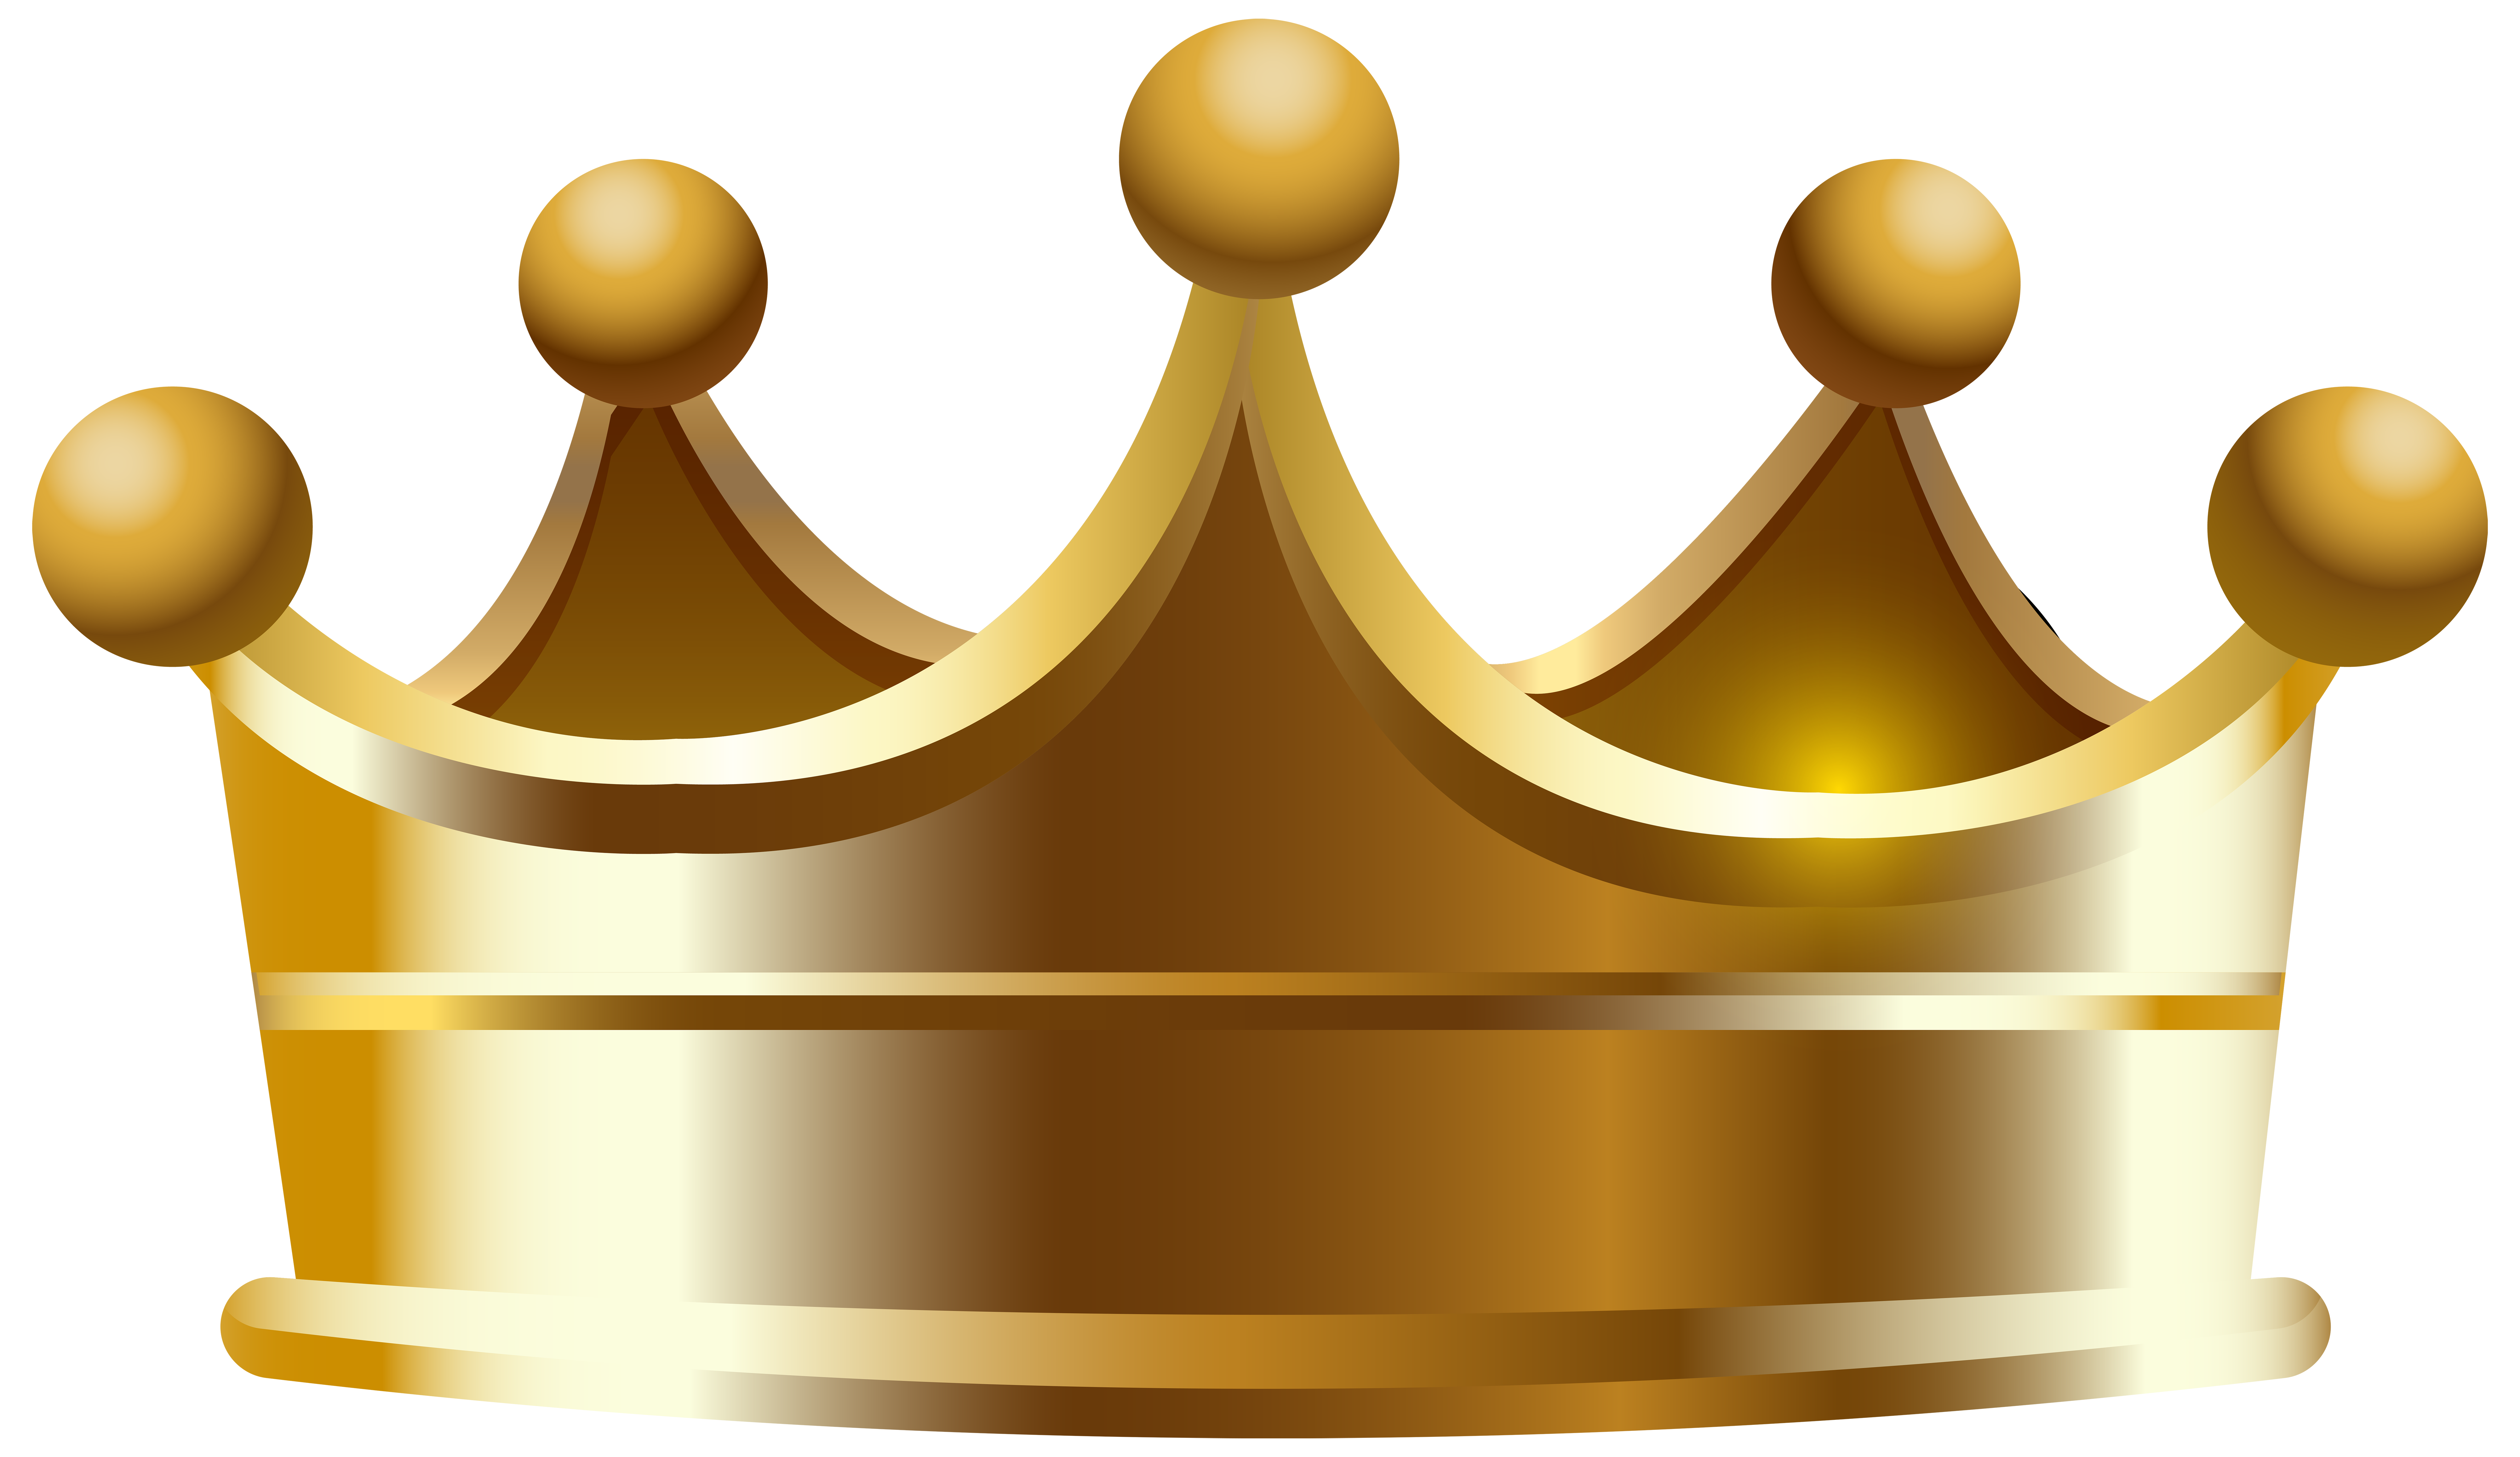 Crown Clipart No Background | Free download best Crown Clipart No ... jpg black and white